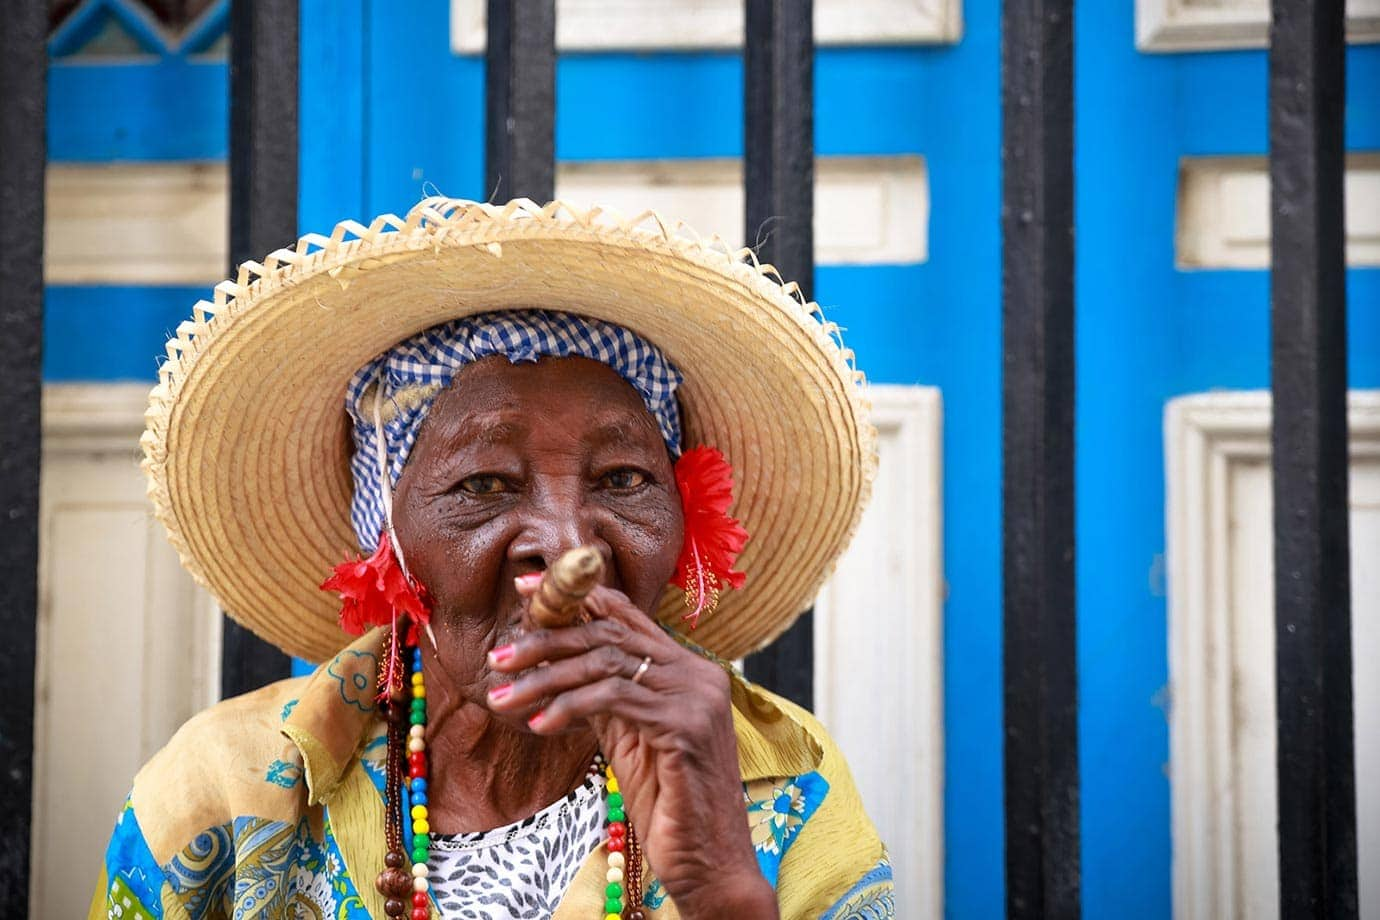 cuba locals cuban havana look talk camera hear things stories their bottomless adventurous culture travelling gear learn today anadventurousworld mjs